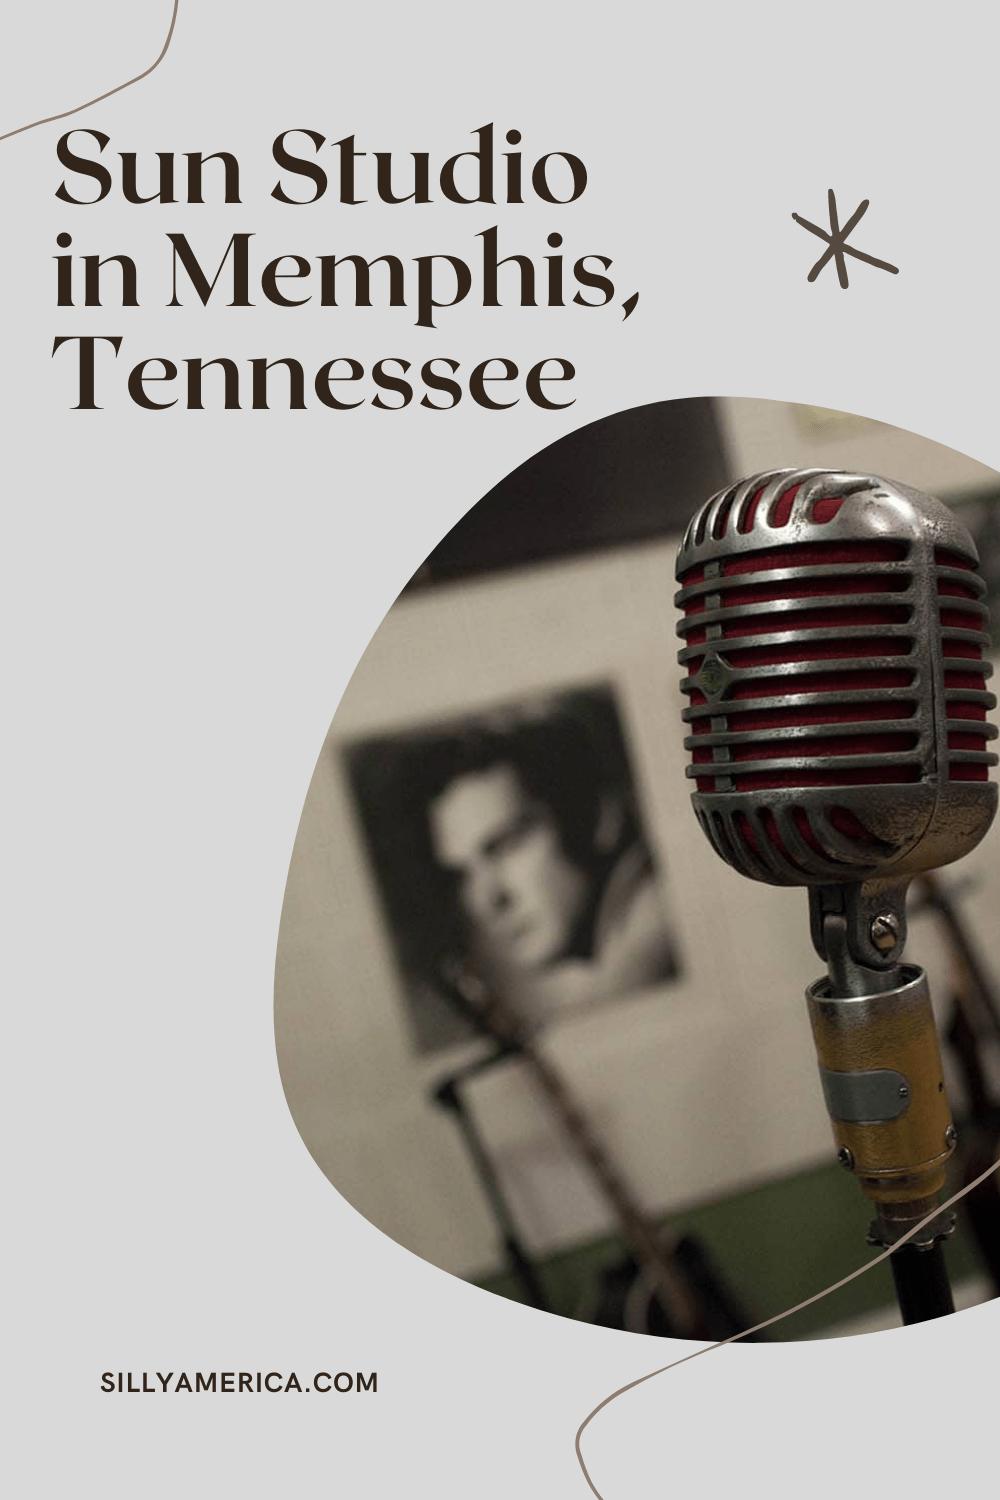 """Tour Sun Studio in Memphis, Tennessee, known as the """"Birthplace of Rock 'n' Roll"""" and """"the most famous recording studio in the world."""" Step in the shoes of Elvis Presley and other rock legends and this famous Memphis tourist attraction.  #Elvis #Elvis #TennesseeRoadsideAttractions #TennesseeRoadsideAttraction #RoadsideAttractions #RoadsideAttraction #RoadTrip #TennesseeRoadTrip #TennesseeBucketList #ThingsToDoInTennessee #MemphisRoadsideAttractions #MemphisRoadsideAttraction  #Memphis"""